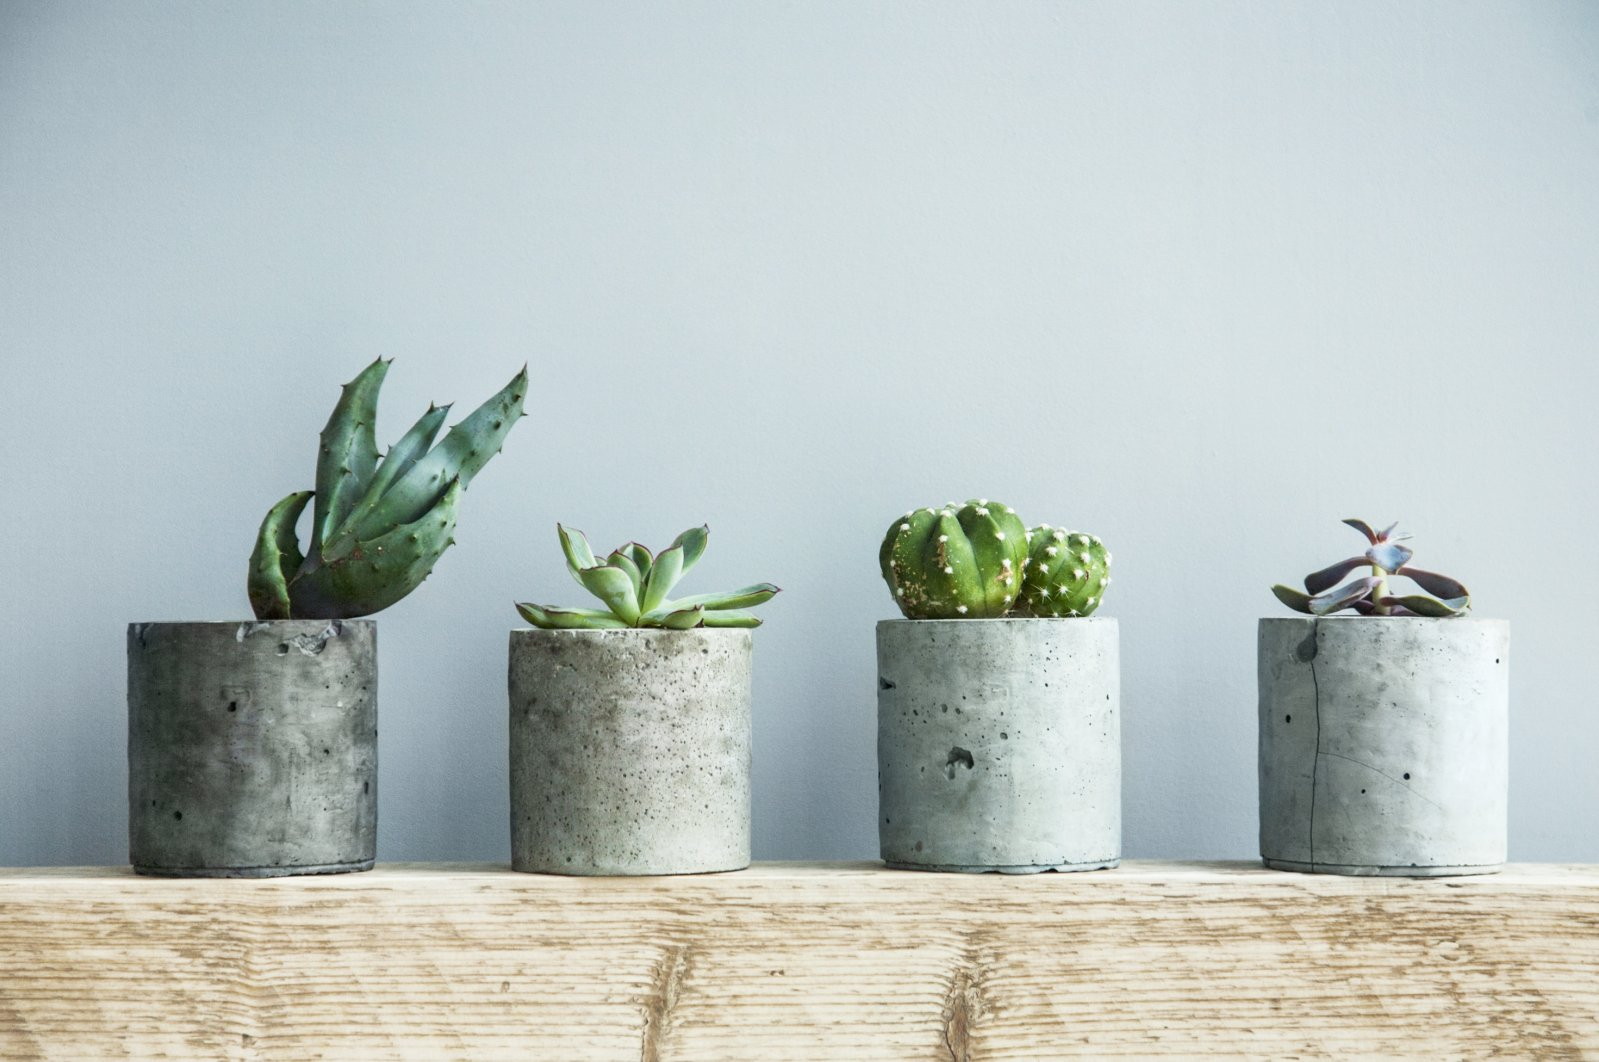 Succulents are the ideal houseplant, and if you don't commit these sins, they'll likely live for a long time. (Shutterstock Photo)